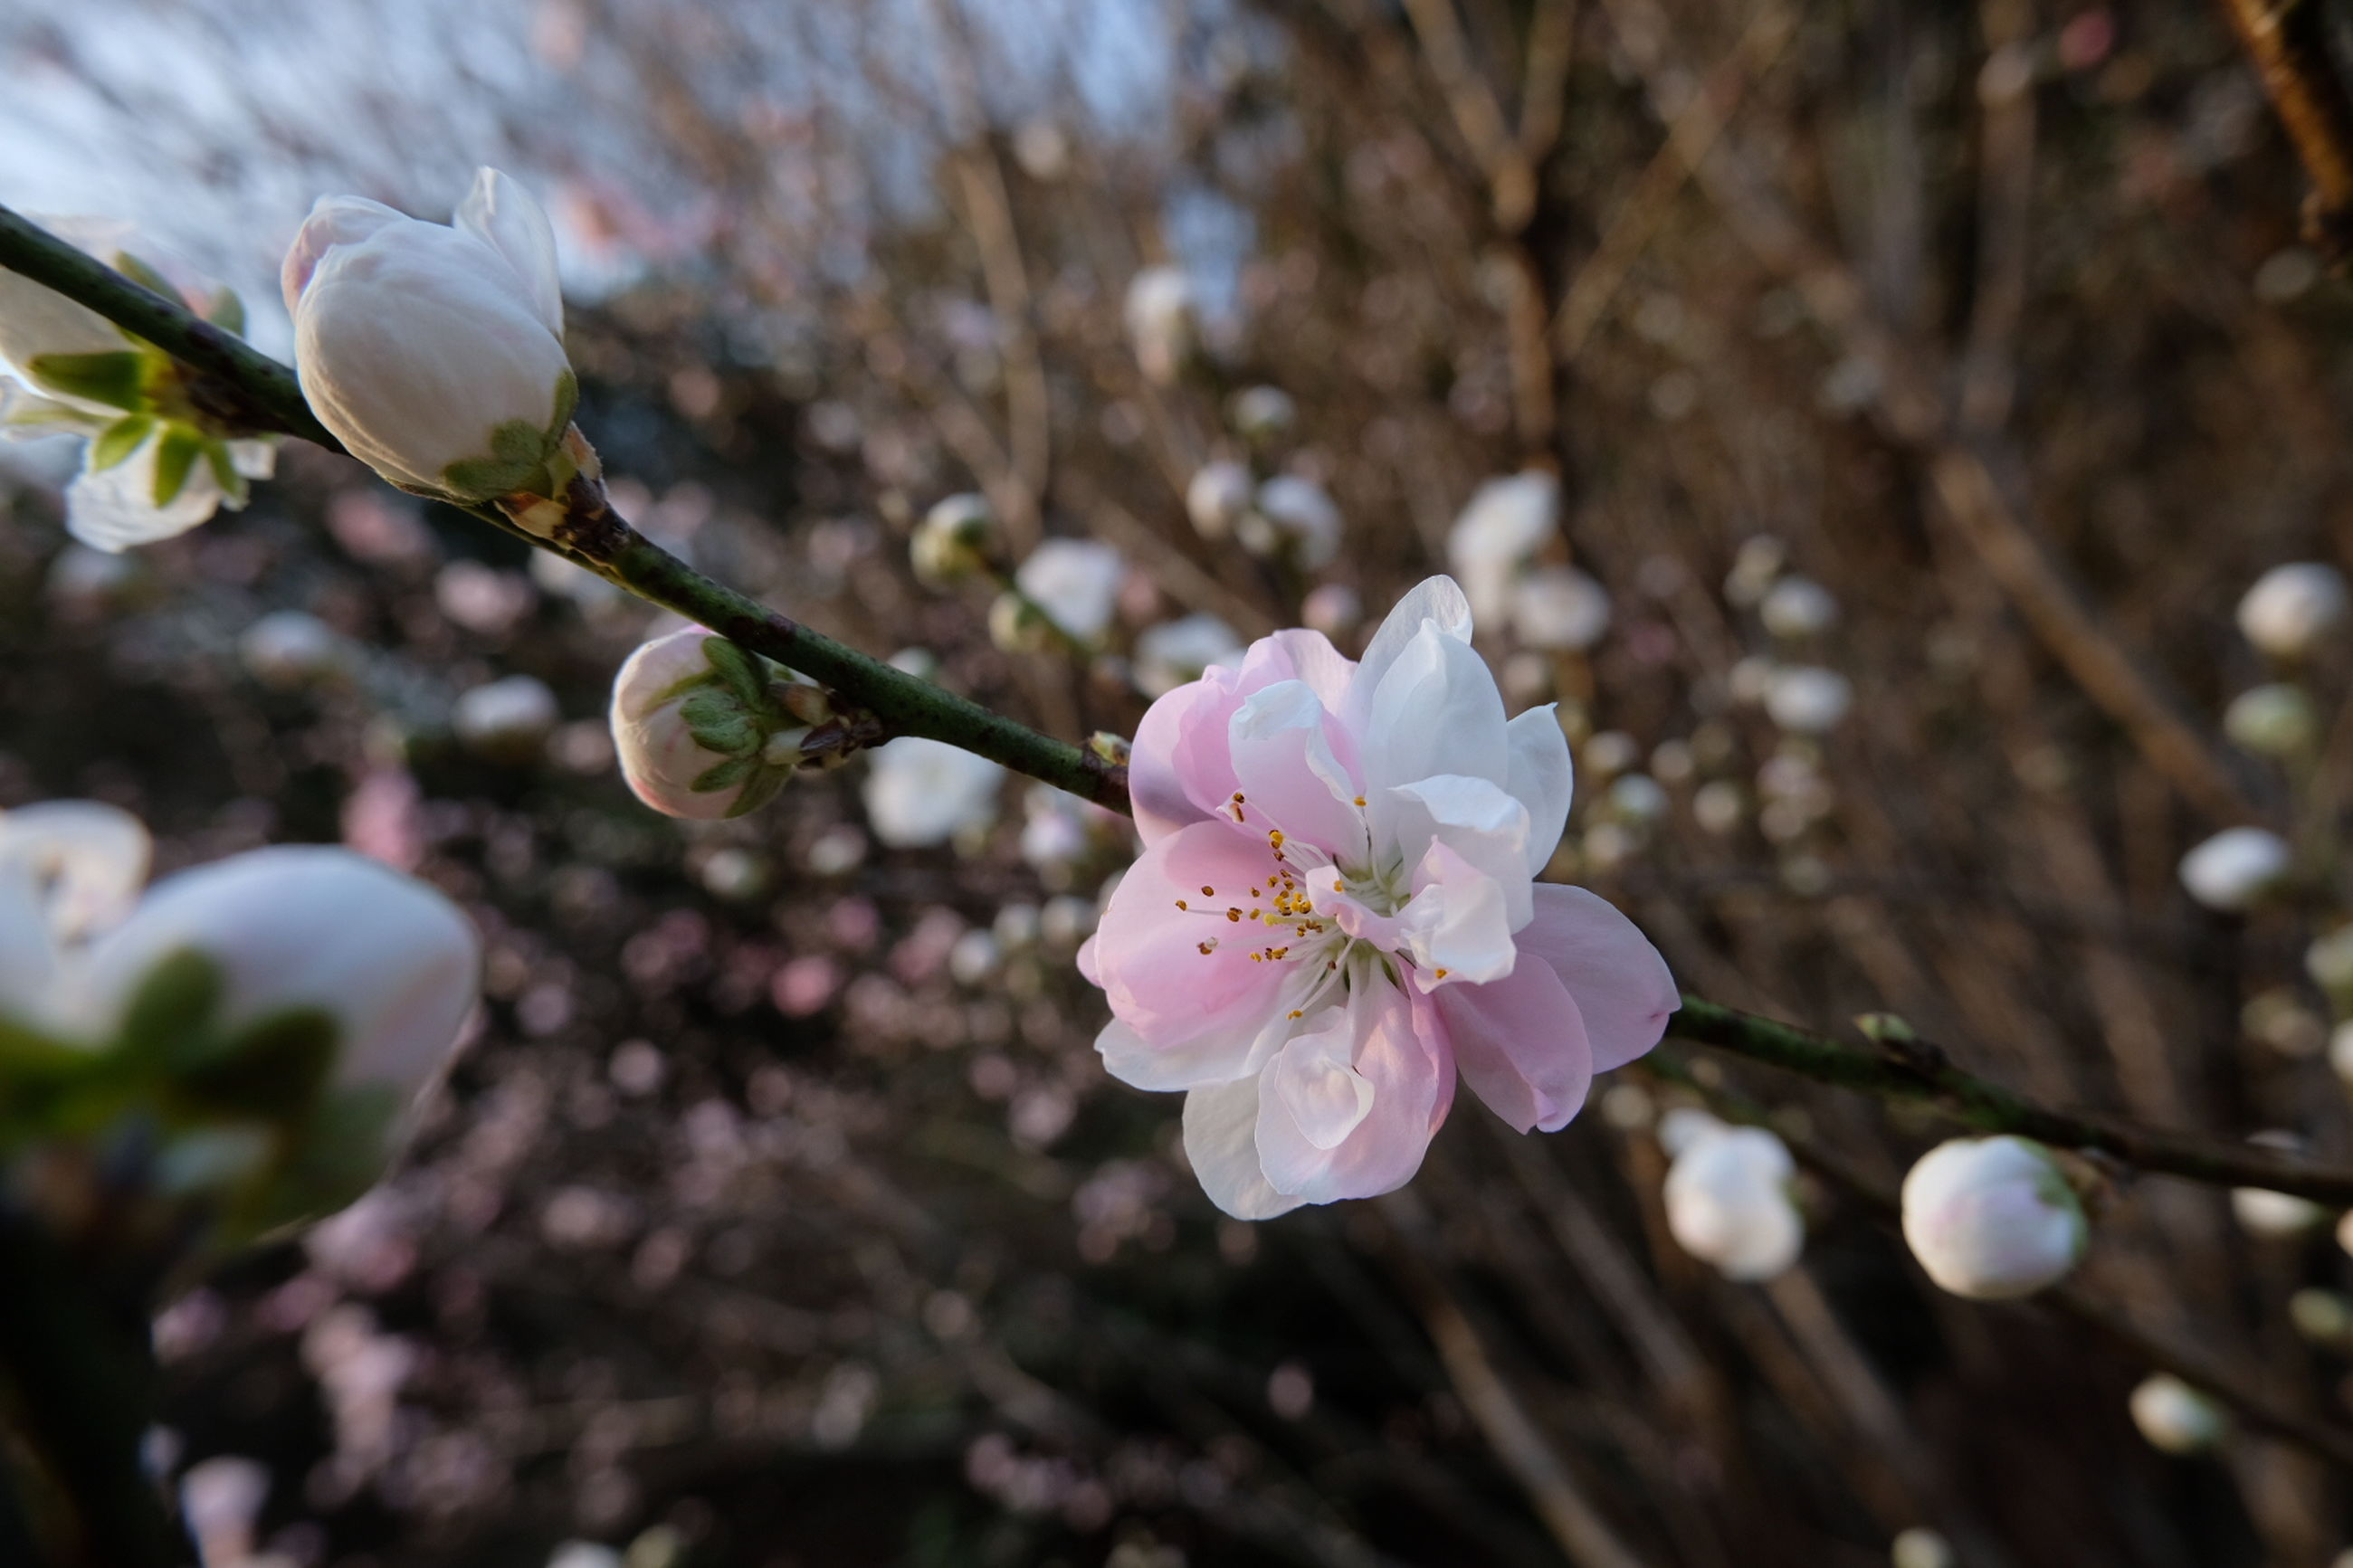 flower, flowering plant, plant, fragility, vulnerability, beauty in nature, growth, freshness, petal, tree, close-up, blossom, nature, flower head, inflorescence, springtime, branch, day, focus on foreground, no people, pink color, cherry blossom, outdoors, pollen, cherry tree, spring